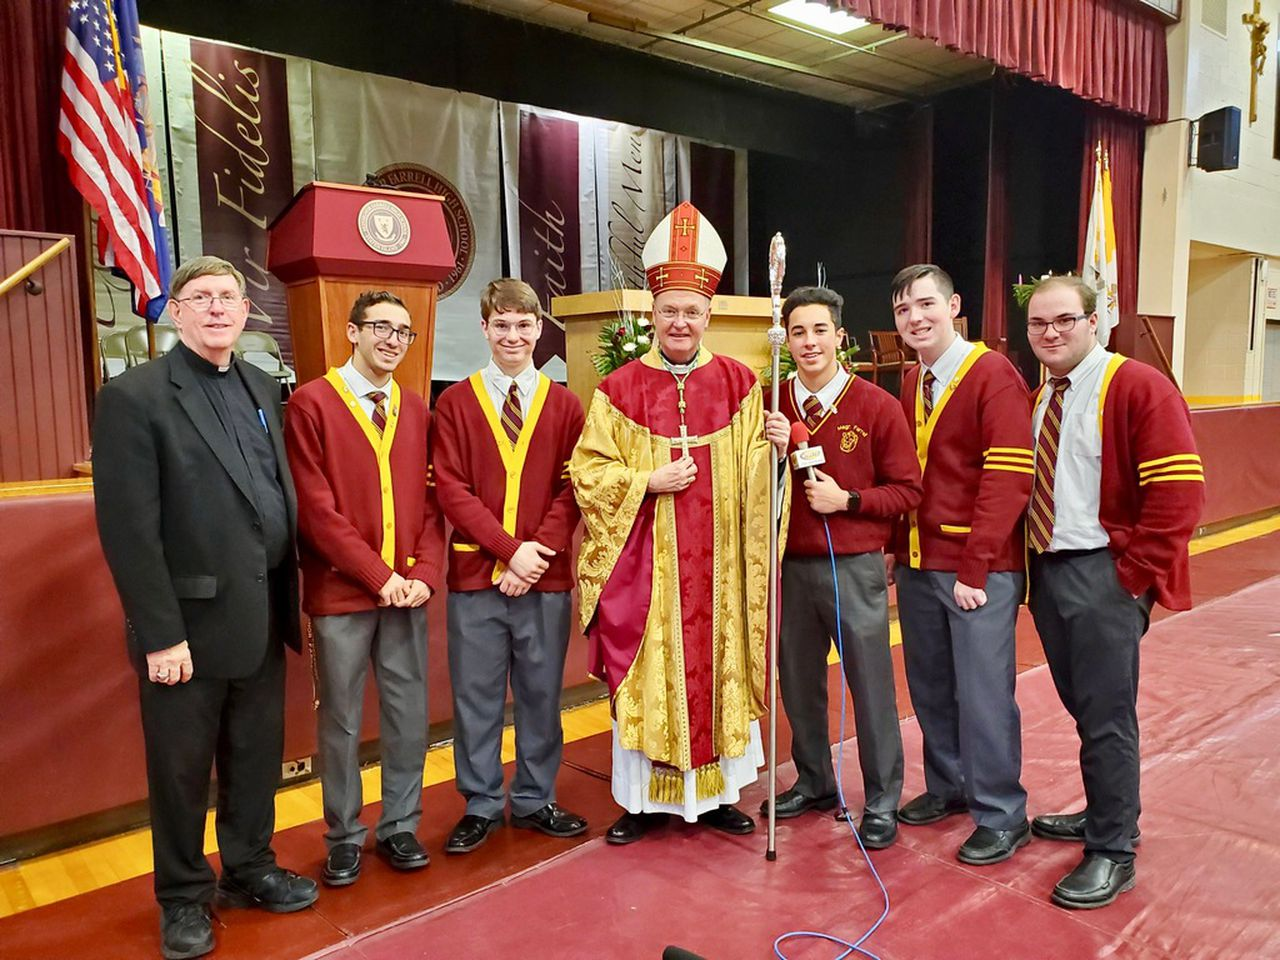 From the left are Brother Paul Hannon, Nicholas Imperato, Andrew Scibelli, Bishop Edmund Whalen, Michael LaMorte, Ryan Taylor and Nicholas Diaz. (Courtesy/Brother Paul Hannon)Staten Island Advance